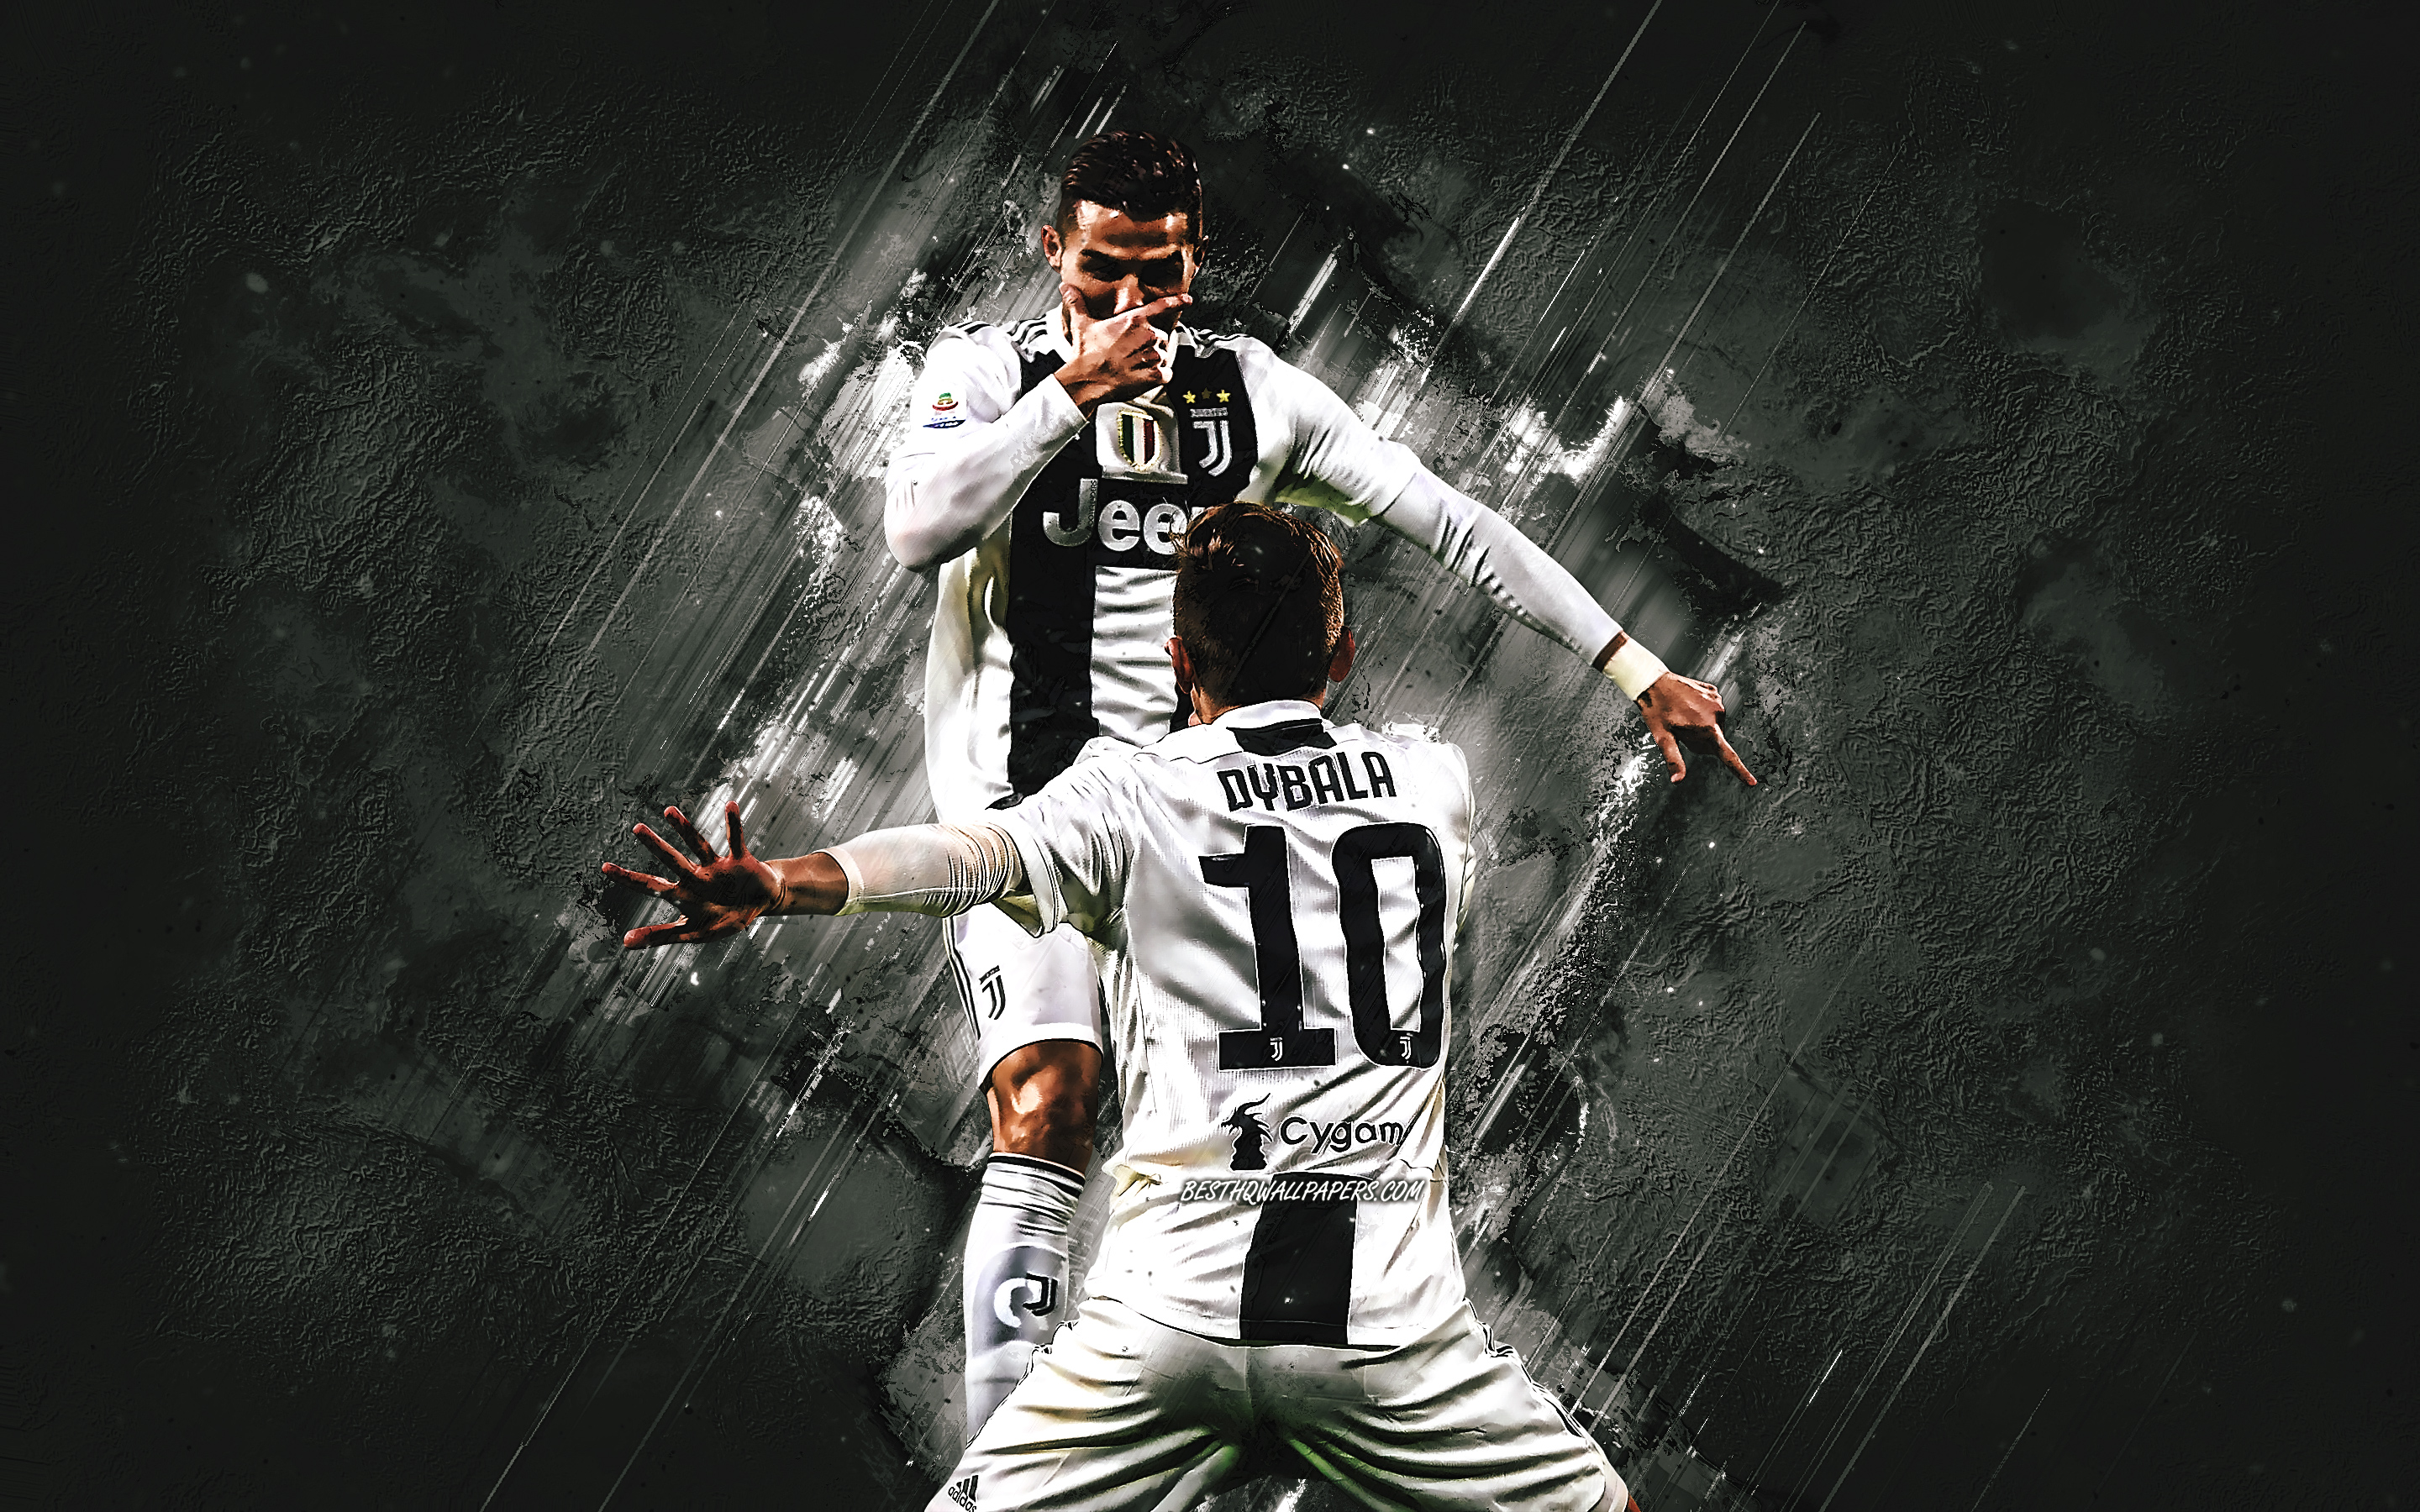 Cristiano Ronaldo, Paulo Dybala, Juventus FC, goal celebration, Italian football club, world football stars, famous football players, CR7, Serie A, Italy, football